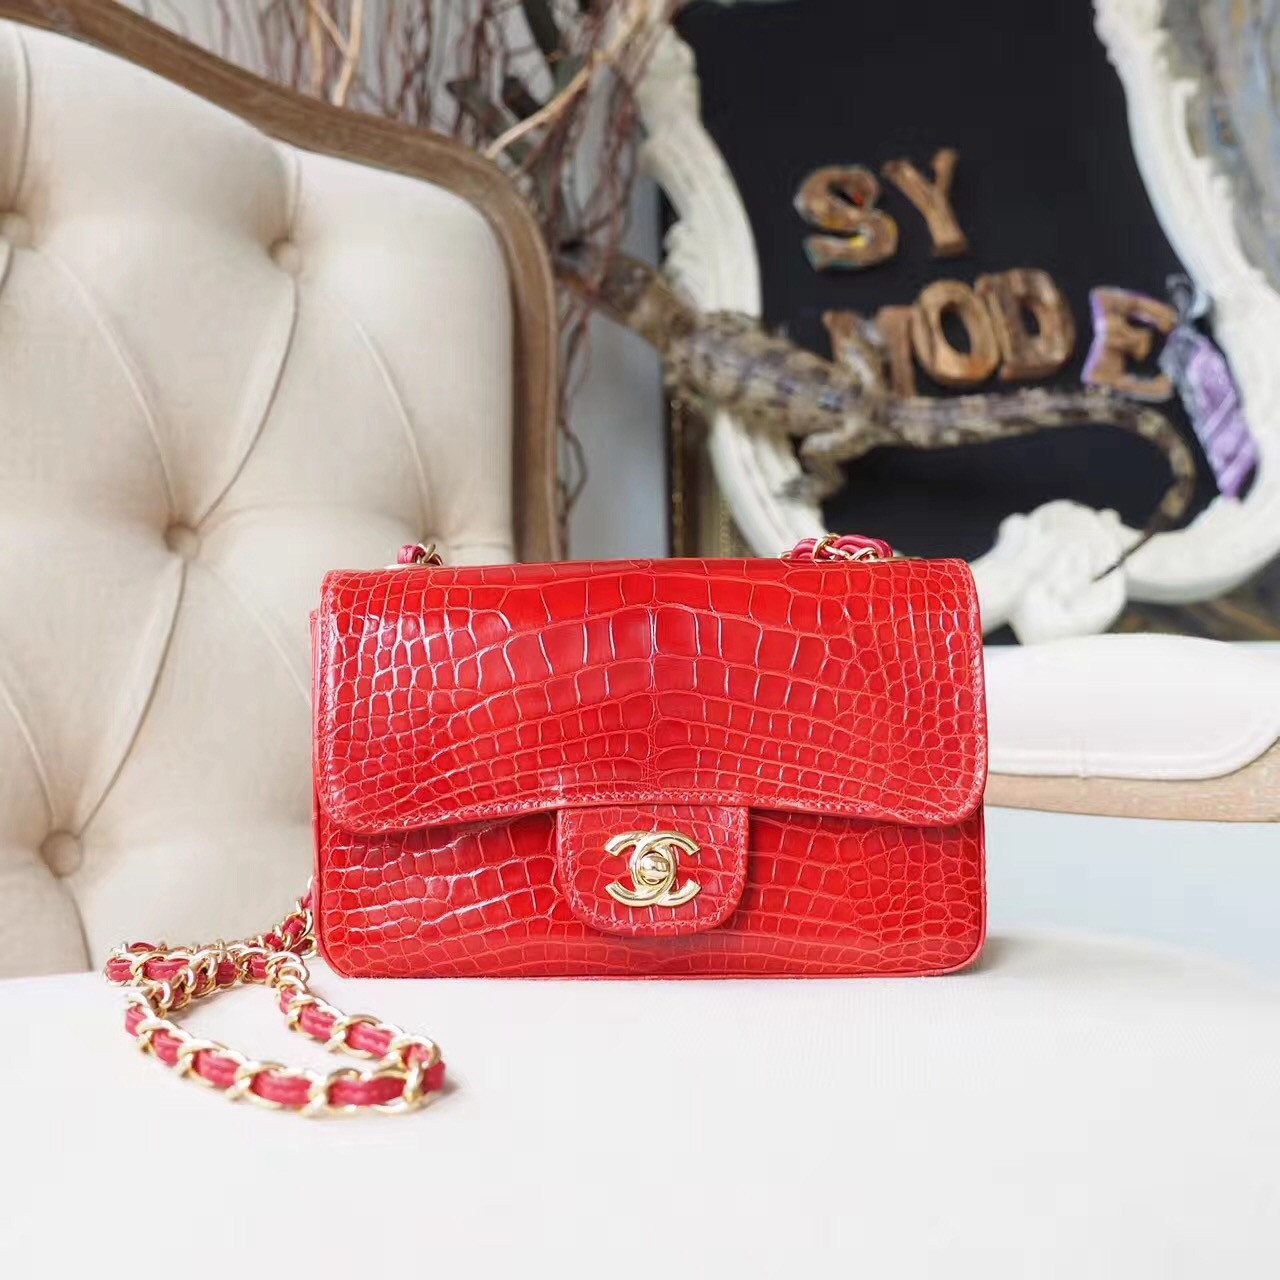 740f66bafec50e Chanel Alligator Skin Classic Flap 20cm Bag Gold Hardware Spring/Summer  2018 Collection, Orange